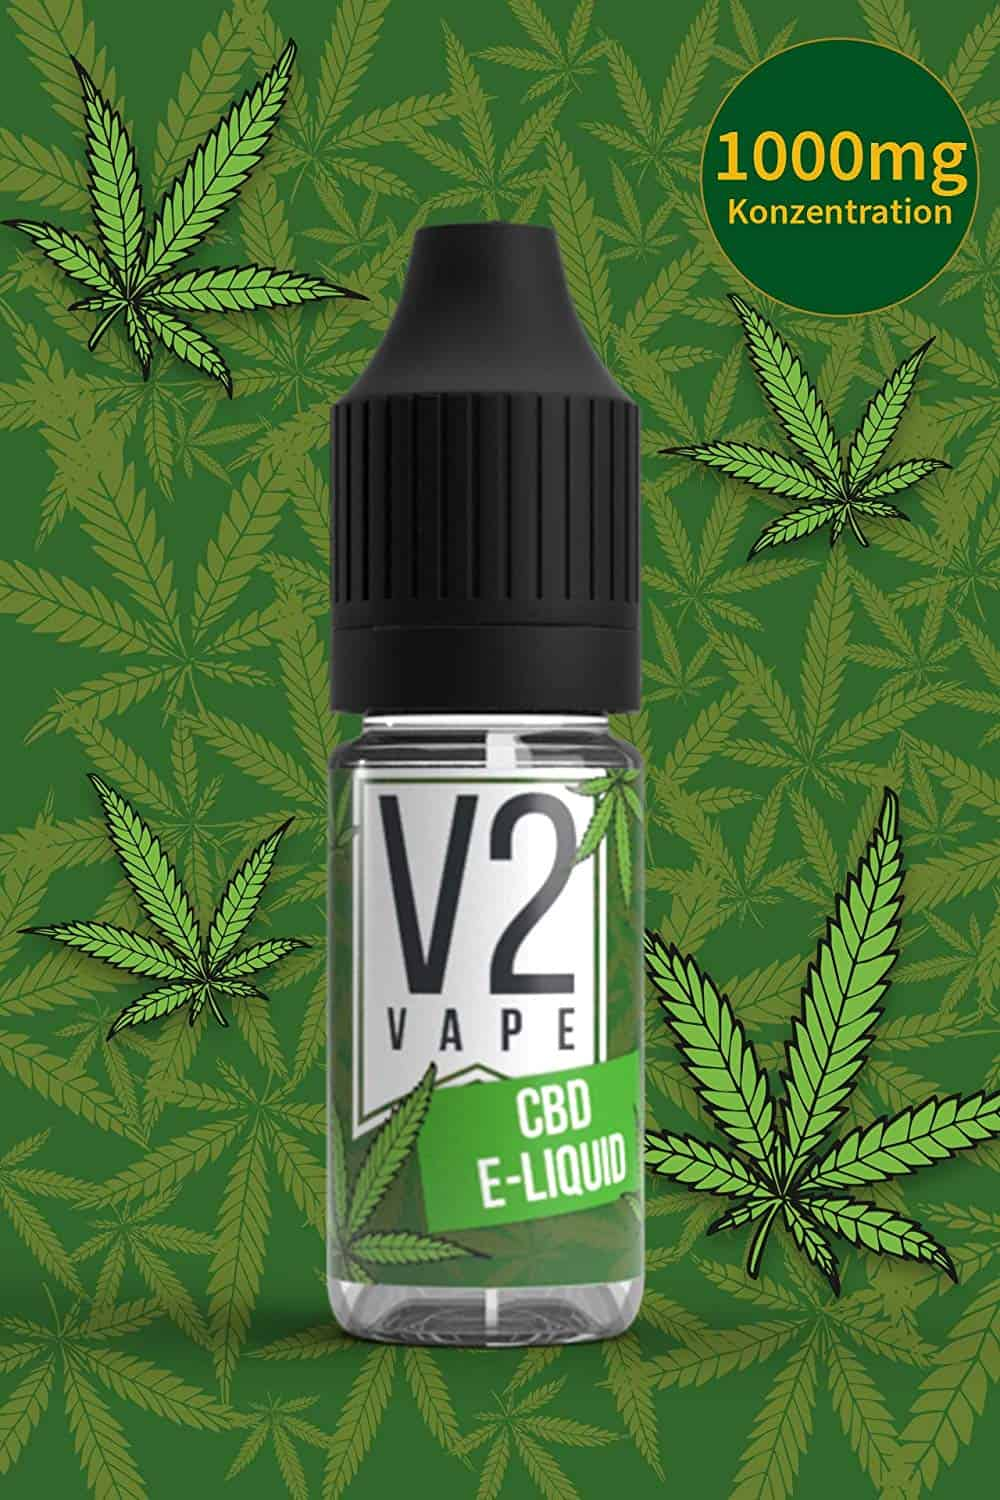 V2 Vape 1000mg CBD liquid